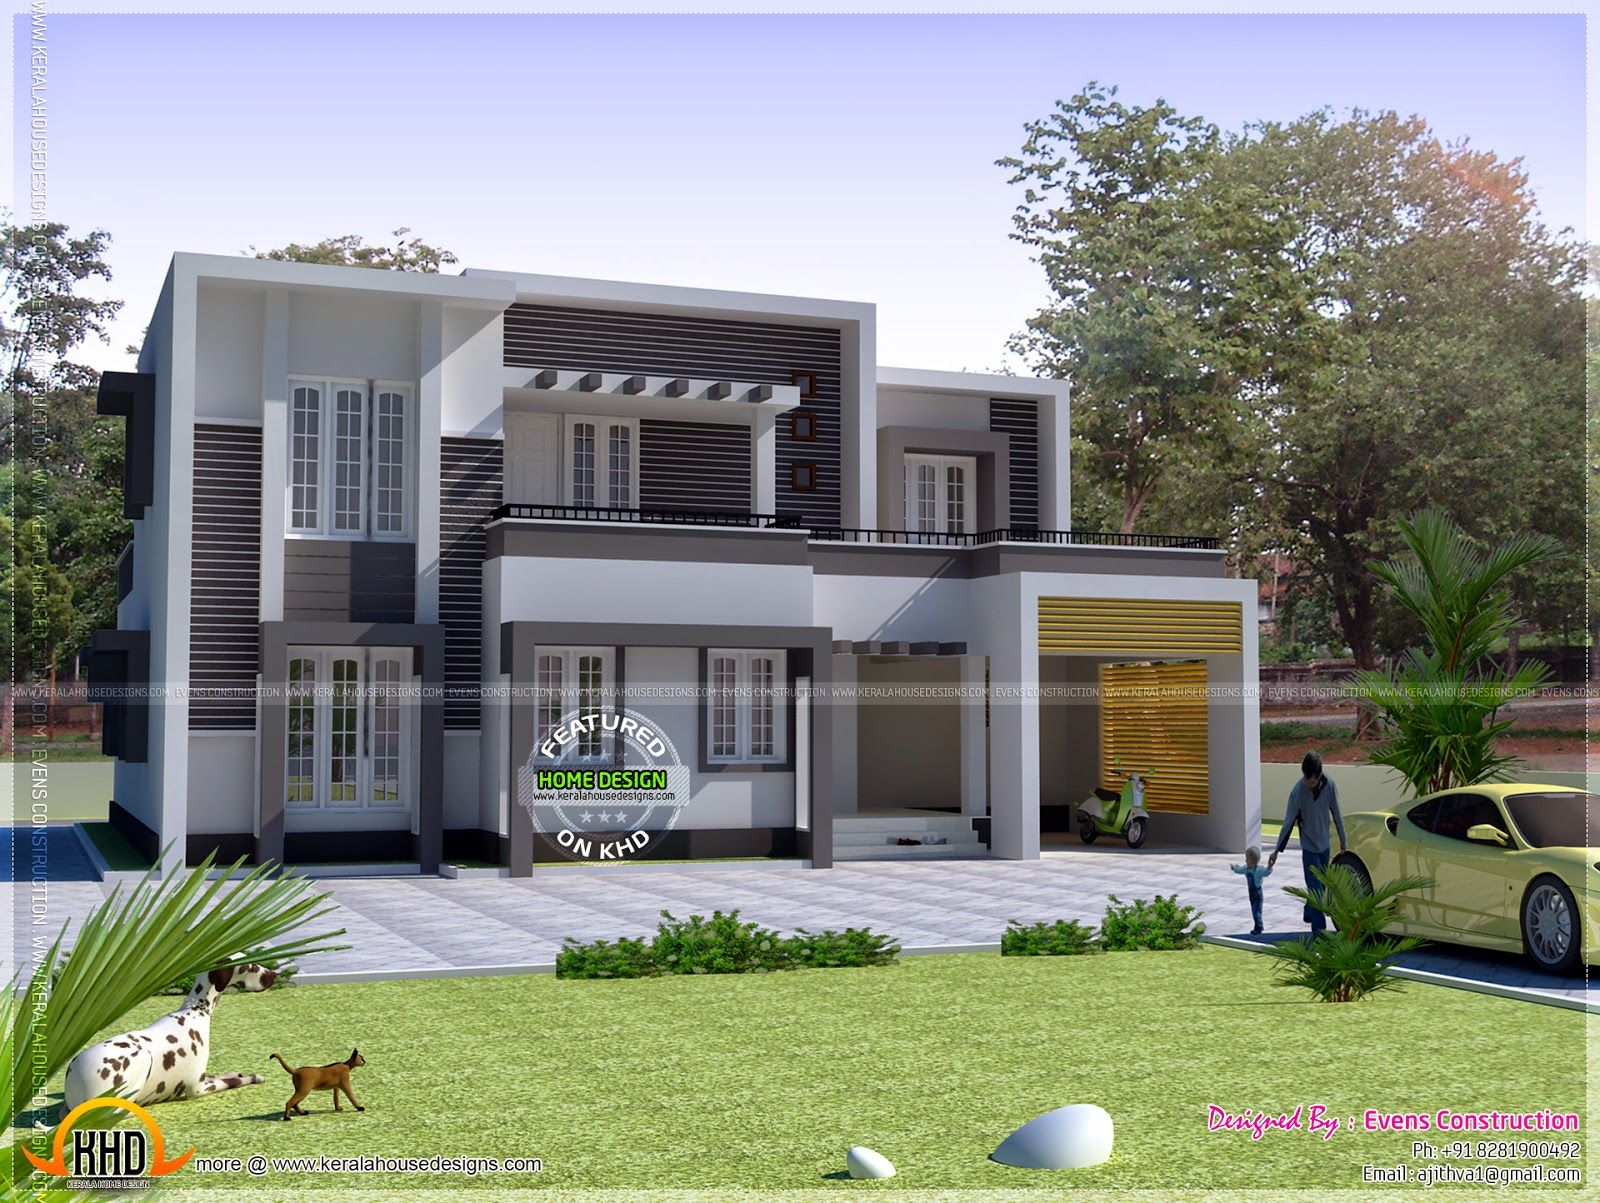 Second Story Addition Flat Roof Google Search Kerala House Design Simple House Modern House Design